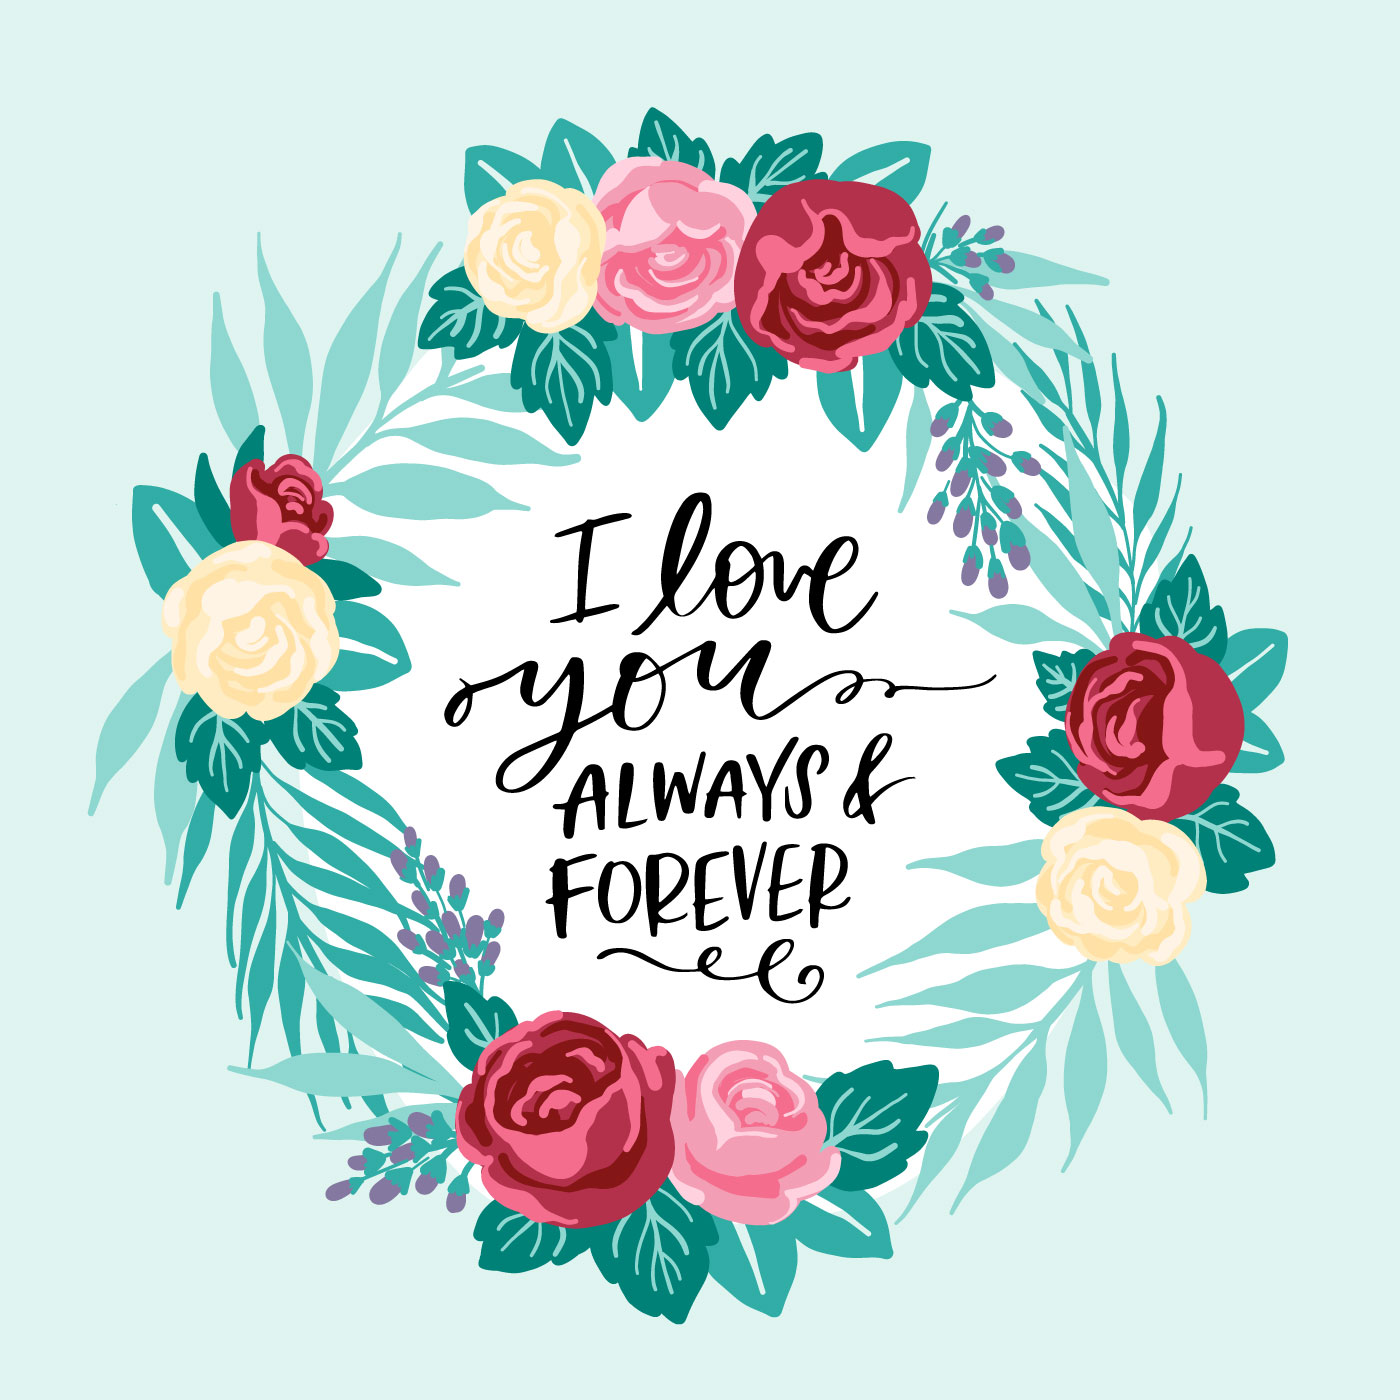 I Love You Always and Forever Floral Wreath - Download Free Vector Art,  Stock Graphics & Images